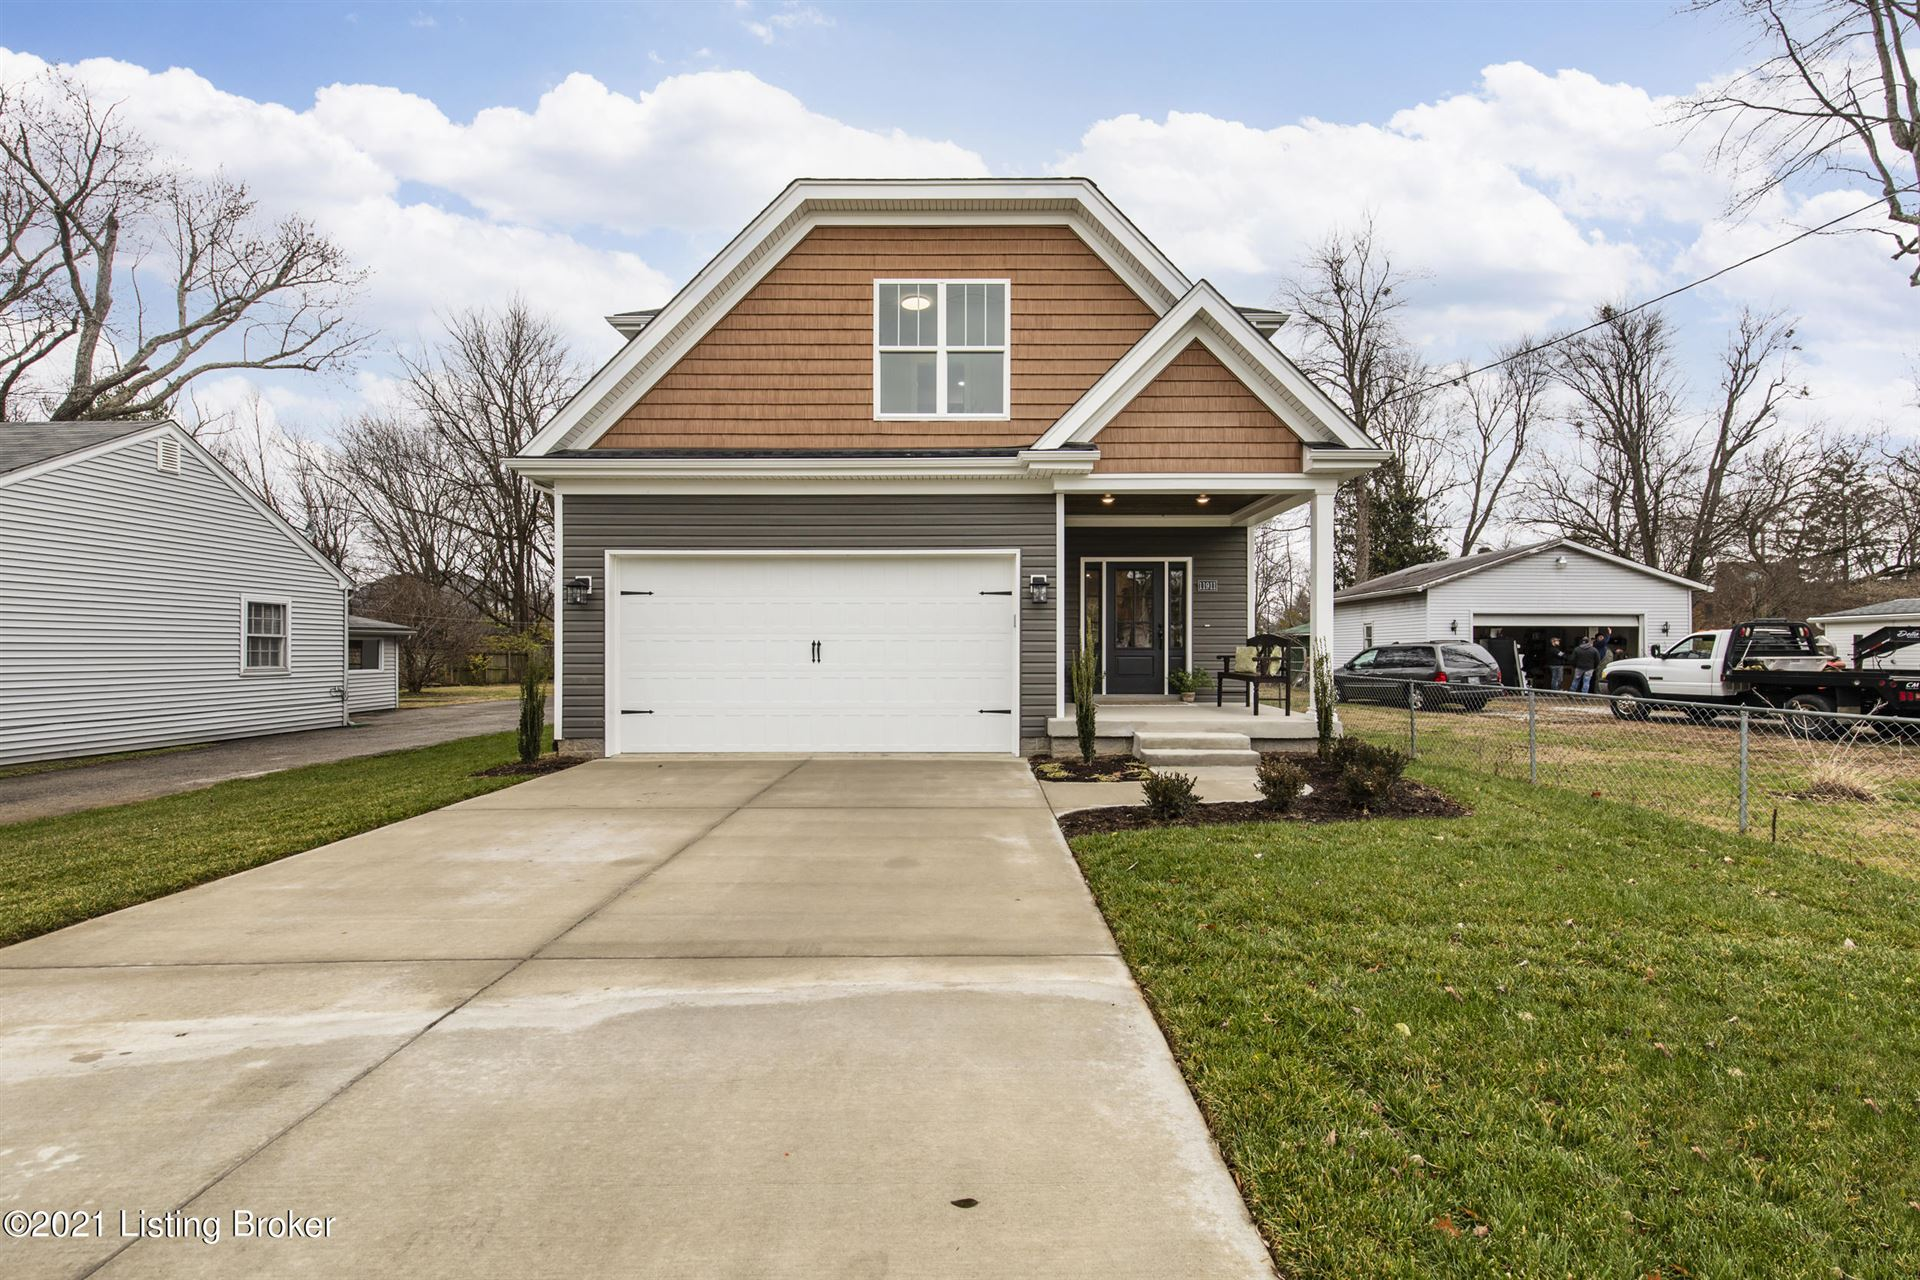 Photo for 11911 Wetherby Ave, Louisville, KY 40243 (MLS # 1579143)